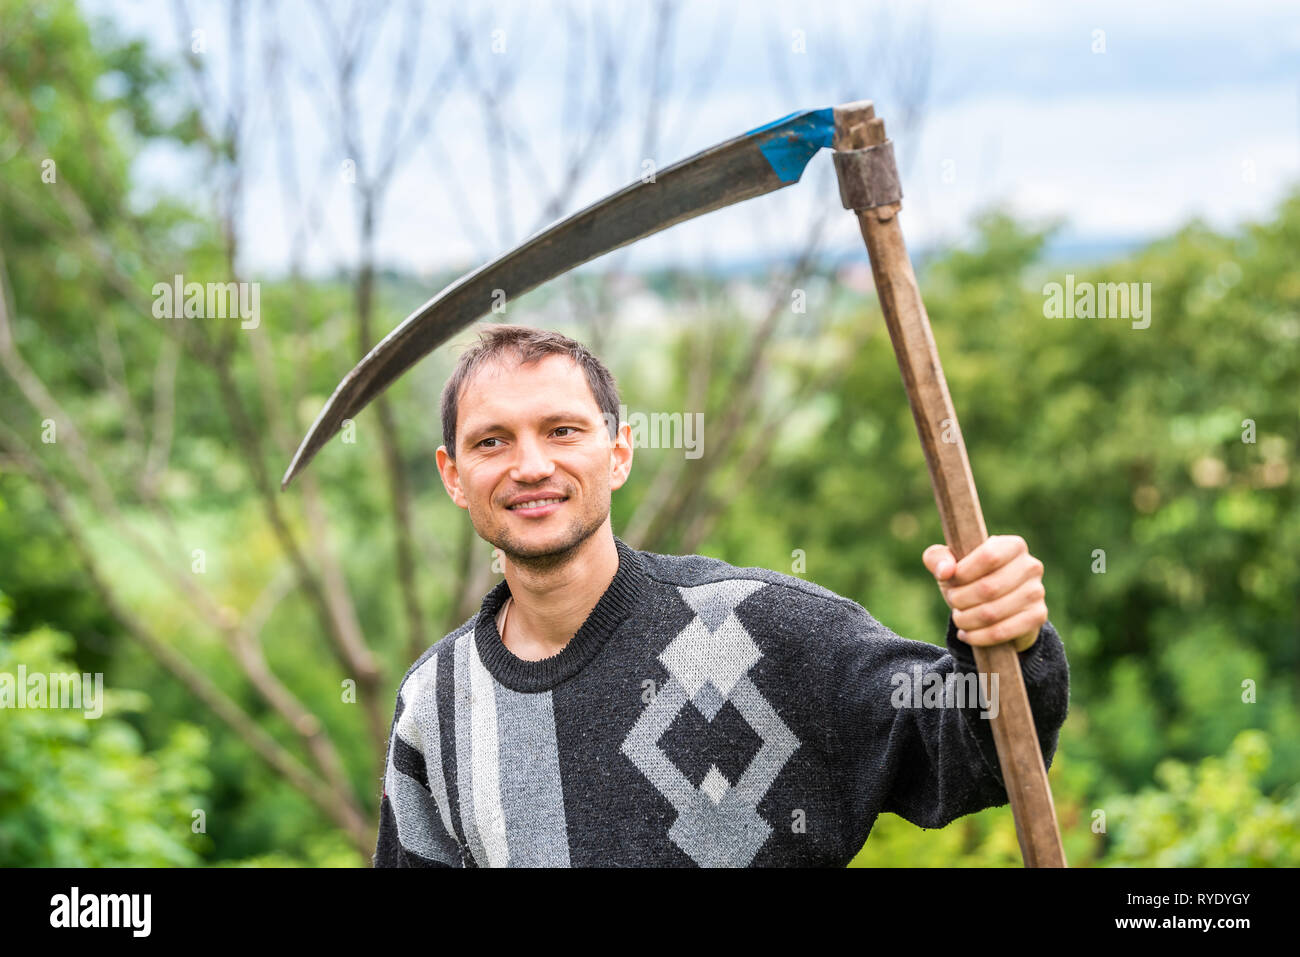 Happy young man closeup face farmer in garden standing with